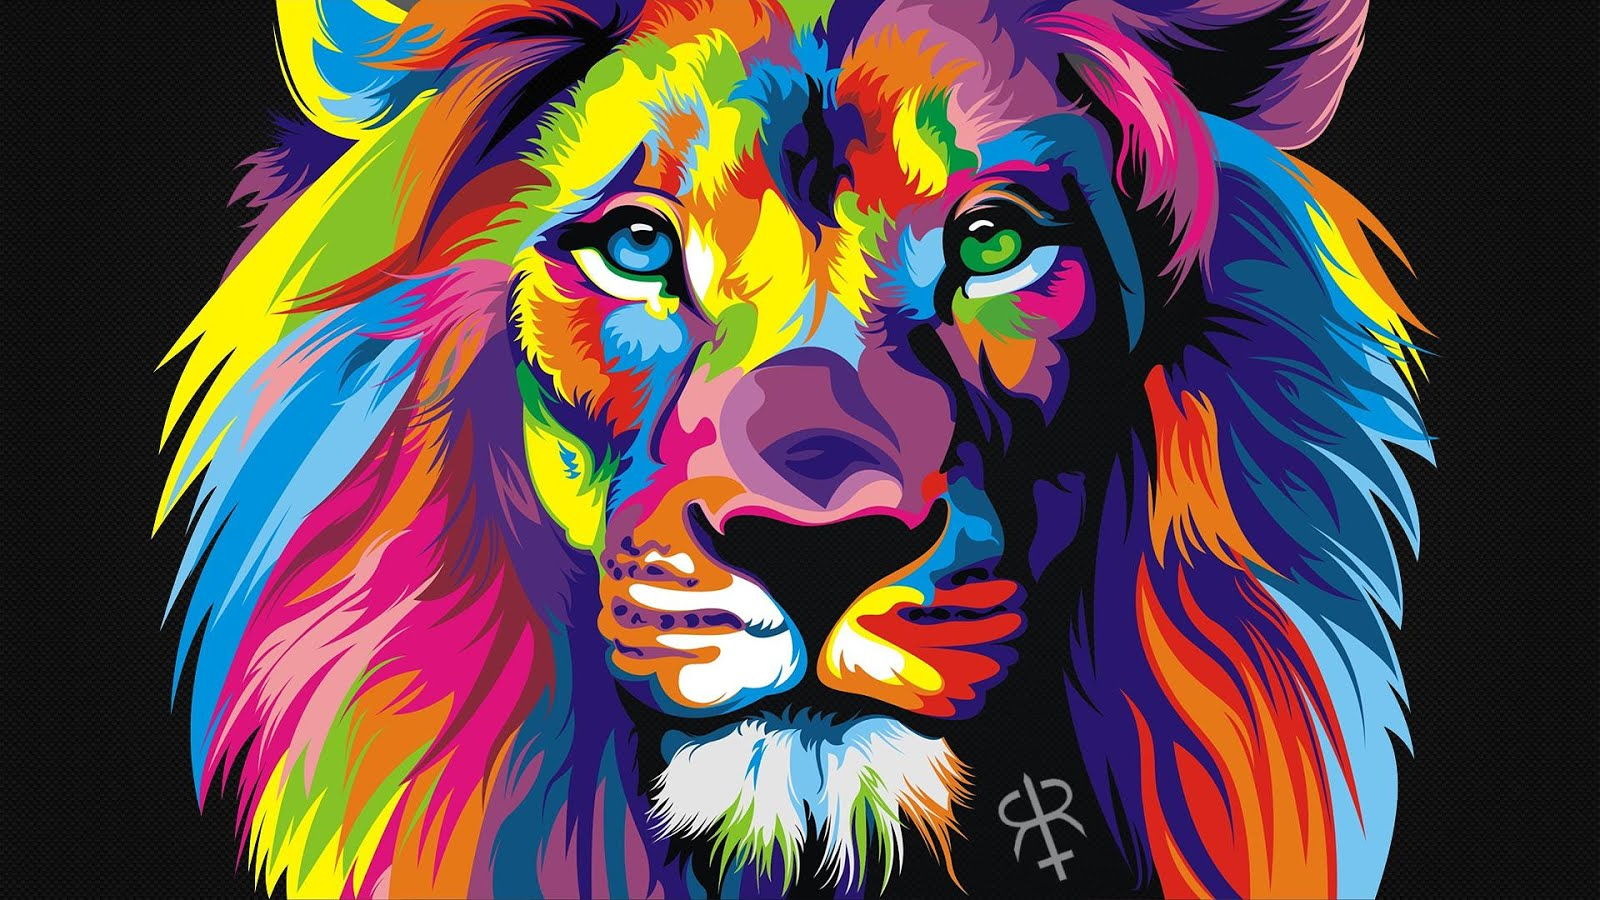 Paint Rainbow Girl Wallpapers: WTFspaghetti: Glorious Lion, Video Games, And Random